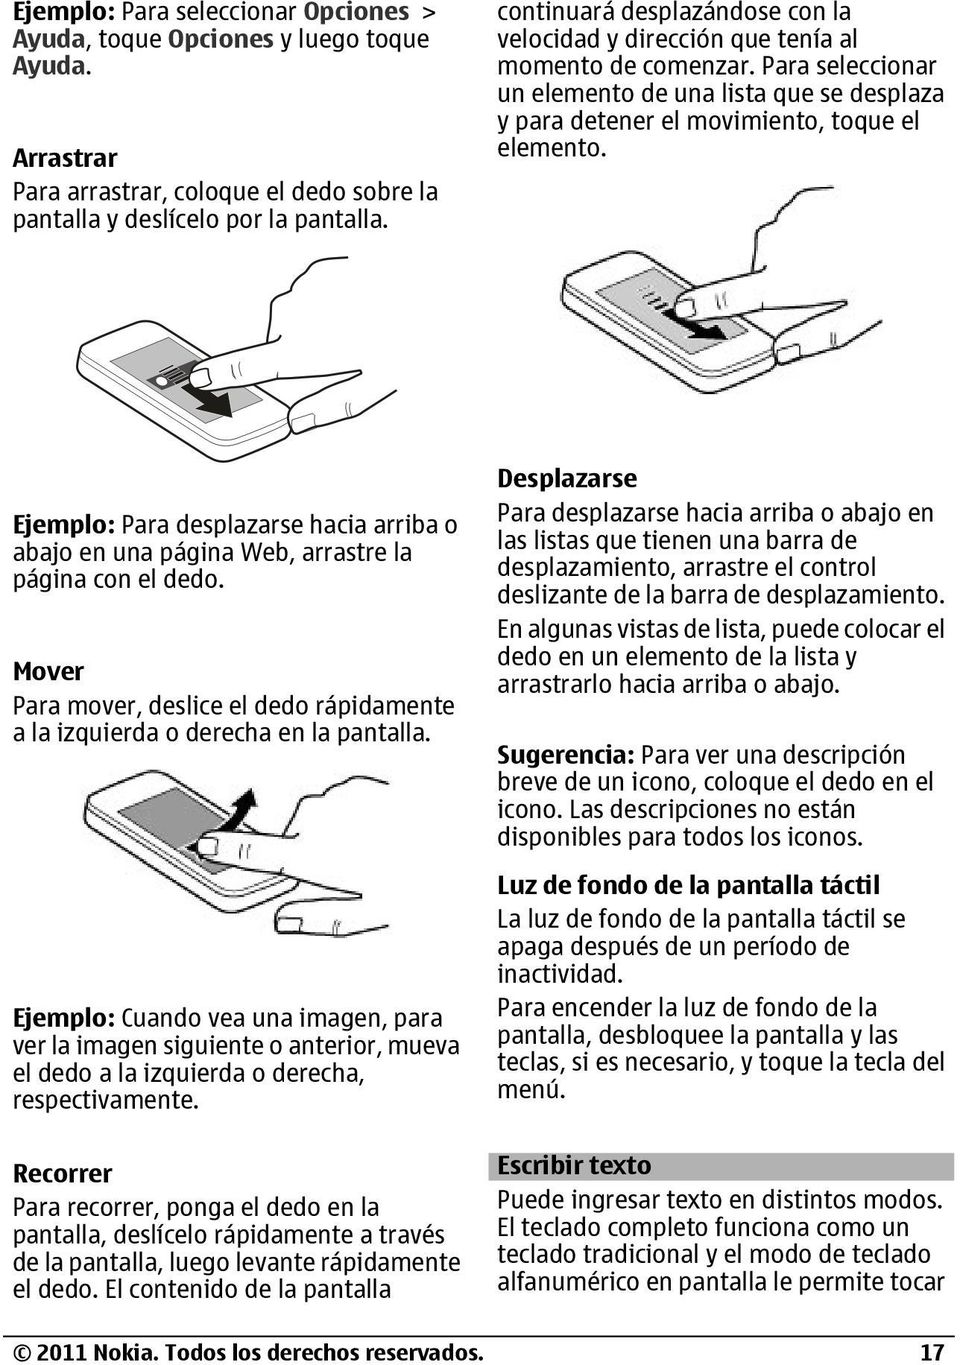 Manual del usuario de Nokia C PDF